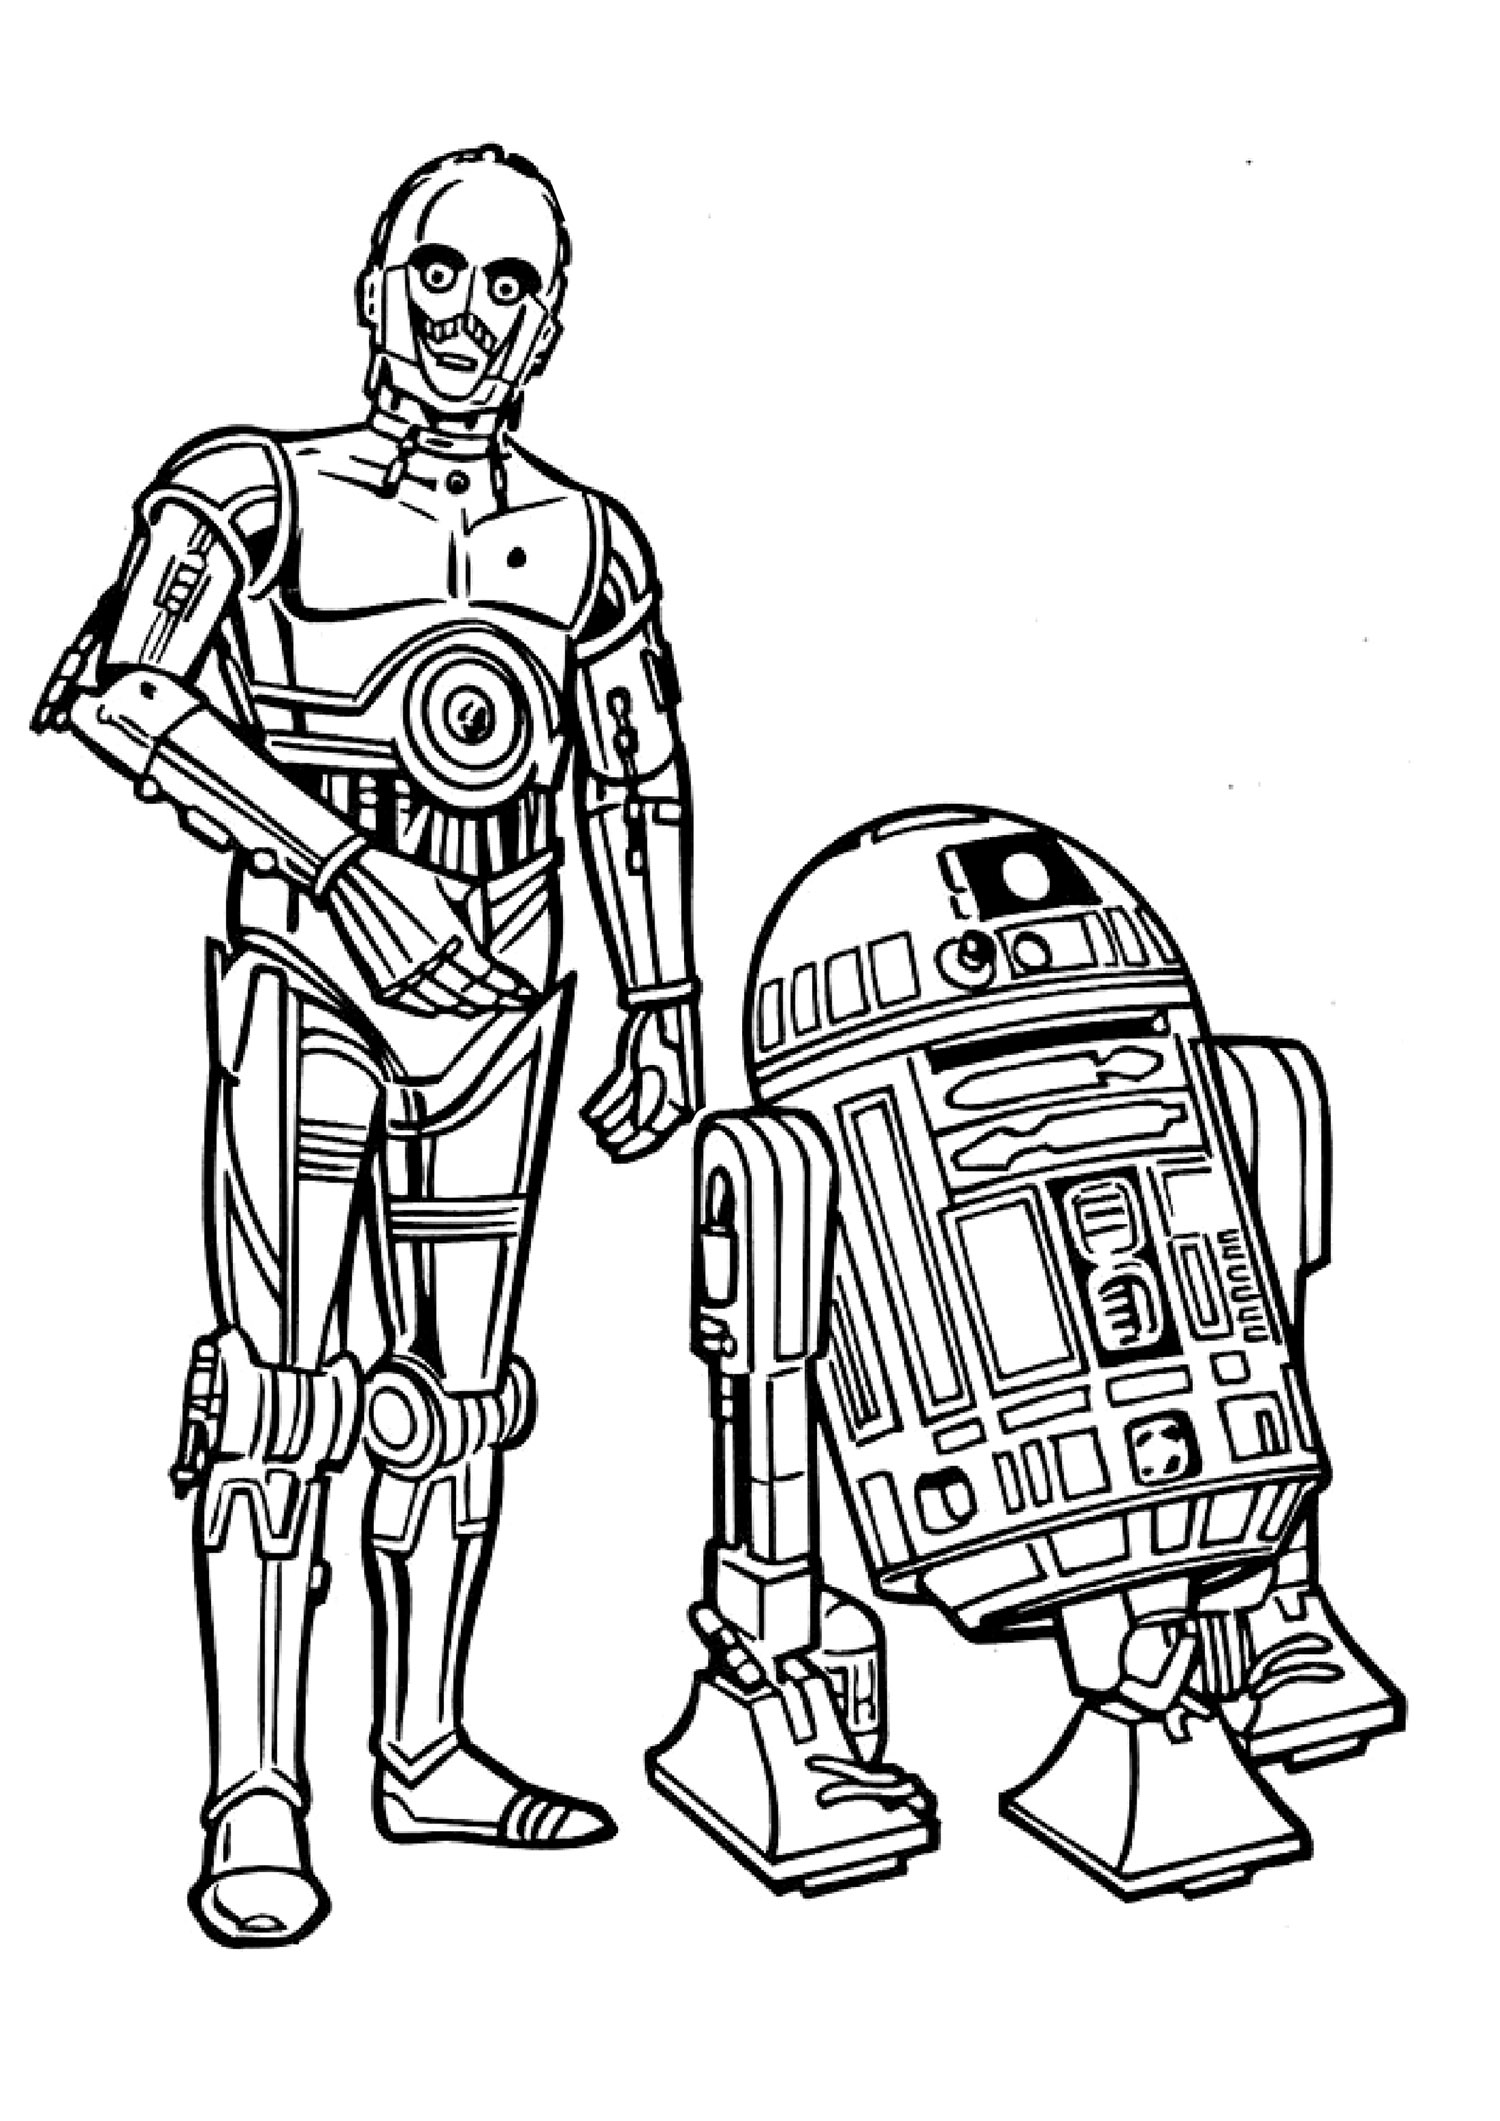 star wars coloring images star wars to download star wars kids coloring pages images star wars coloring